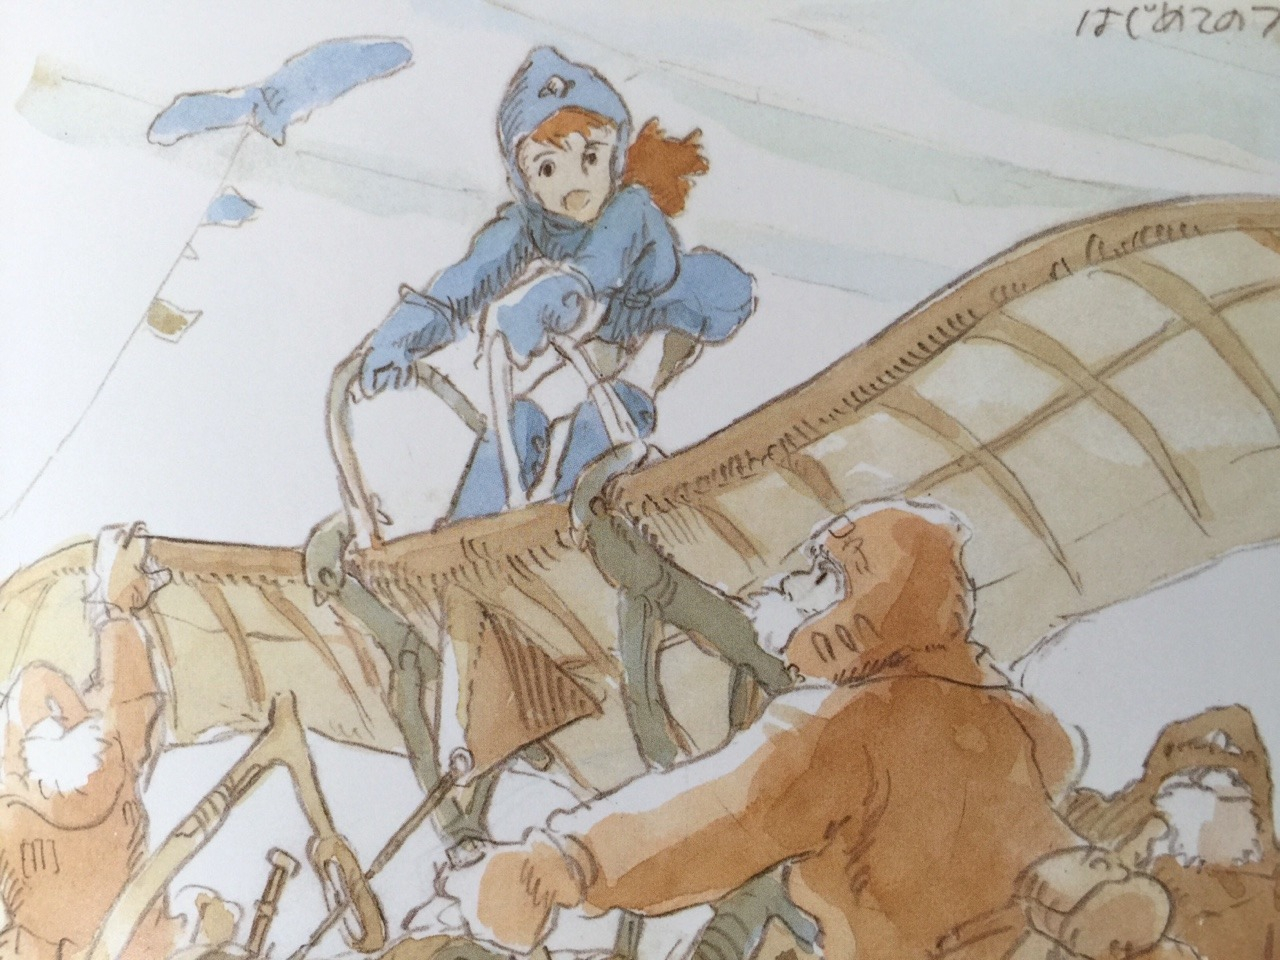 Production-Sketches-and-Concept-Work-for-Nausica-of-the-Valley-of-the-Wind-Hayao-Miyazaki-nausicaa-of-the-valley-of-the-wind-40590592-1280-960.jpg